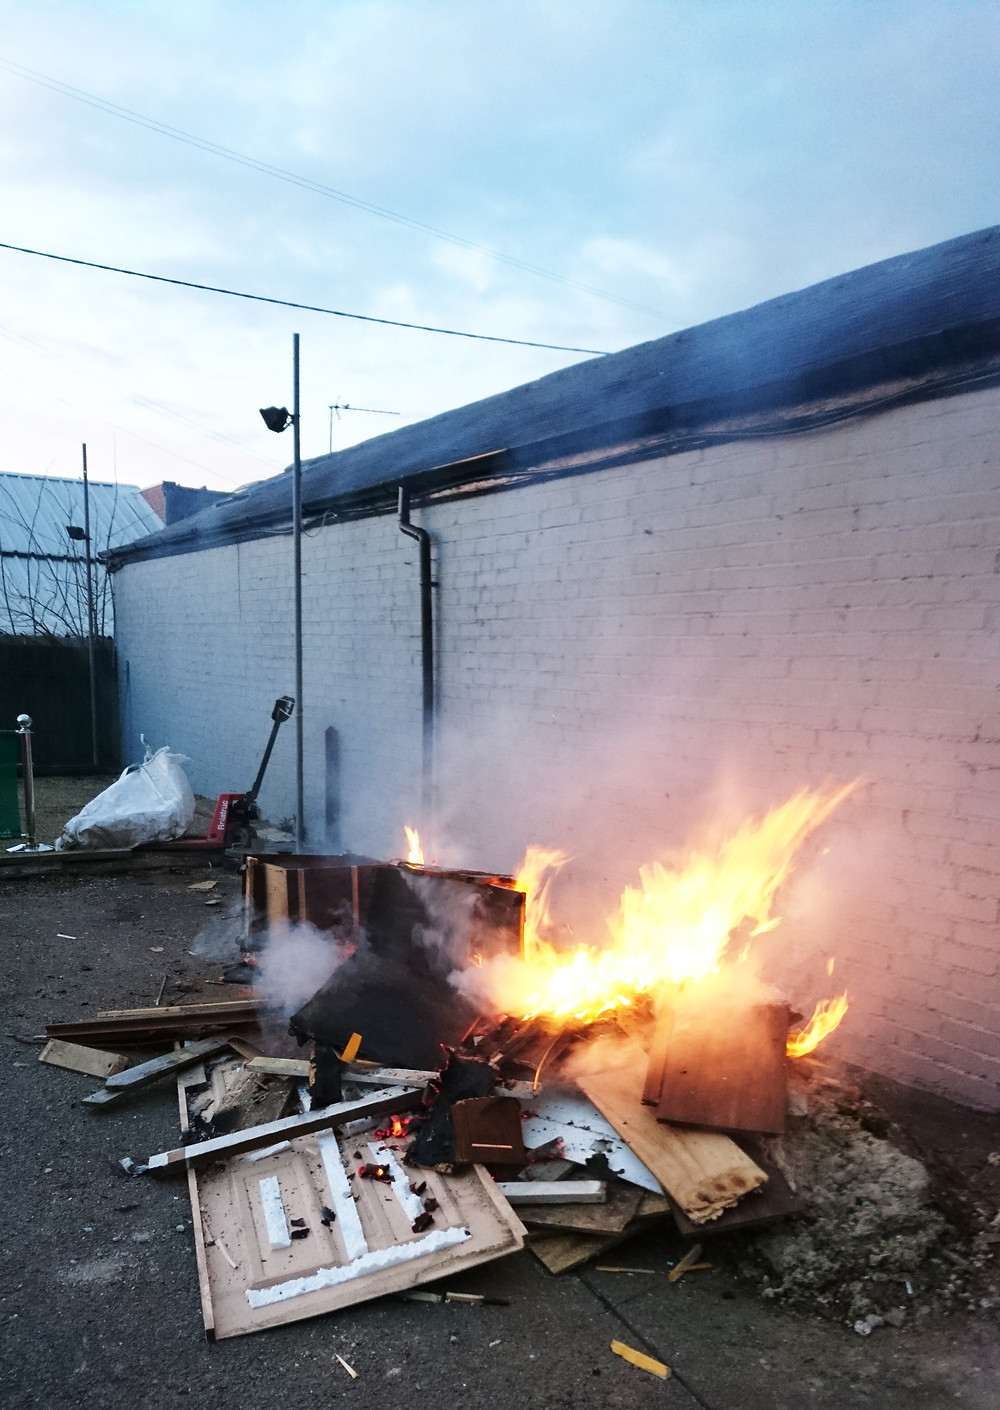 Burning waste from fly-tipping